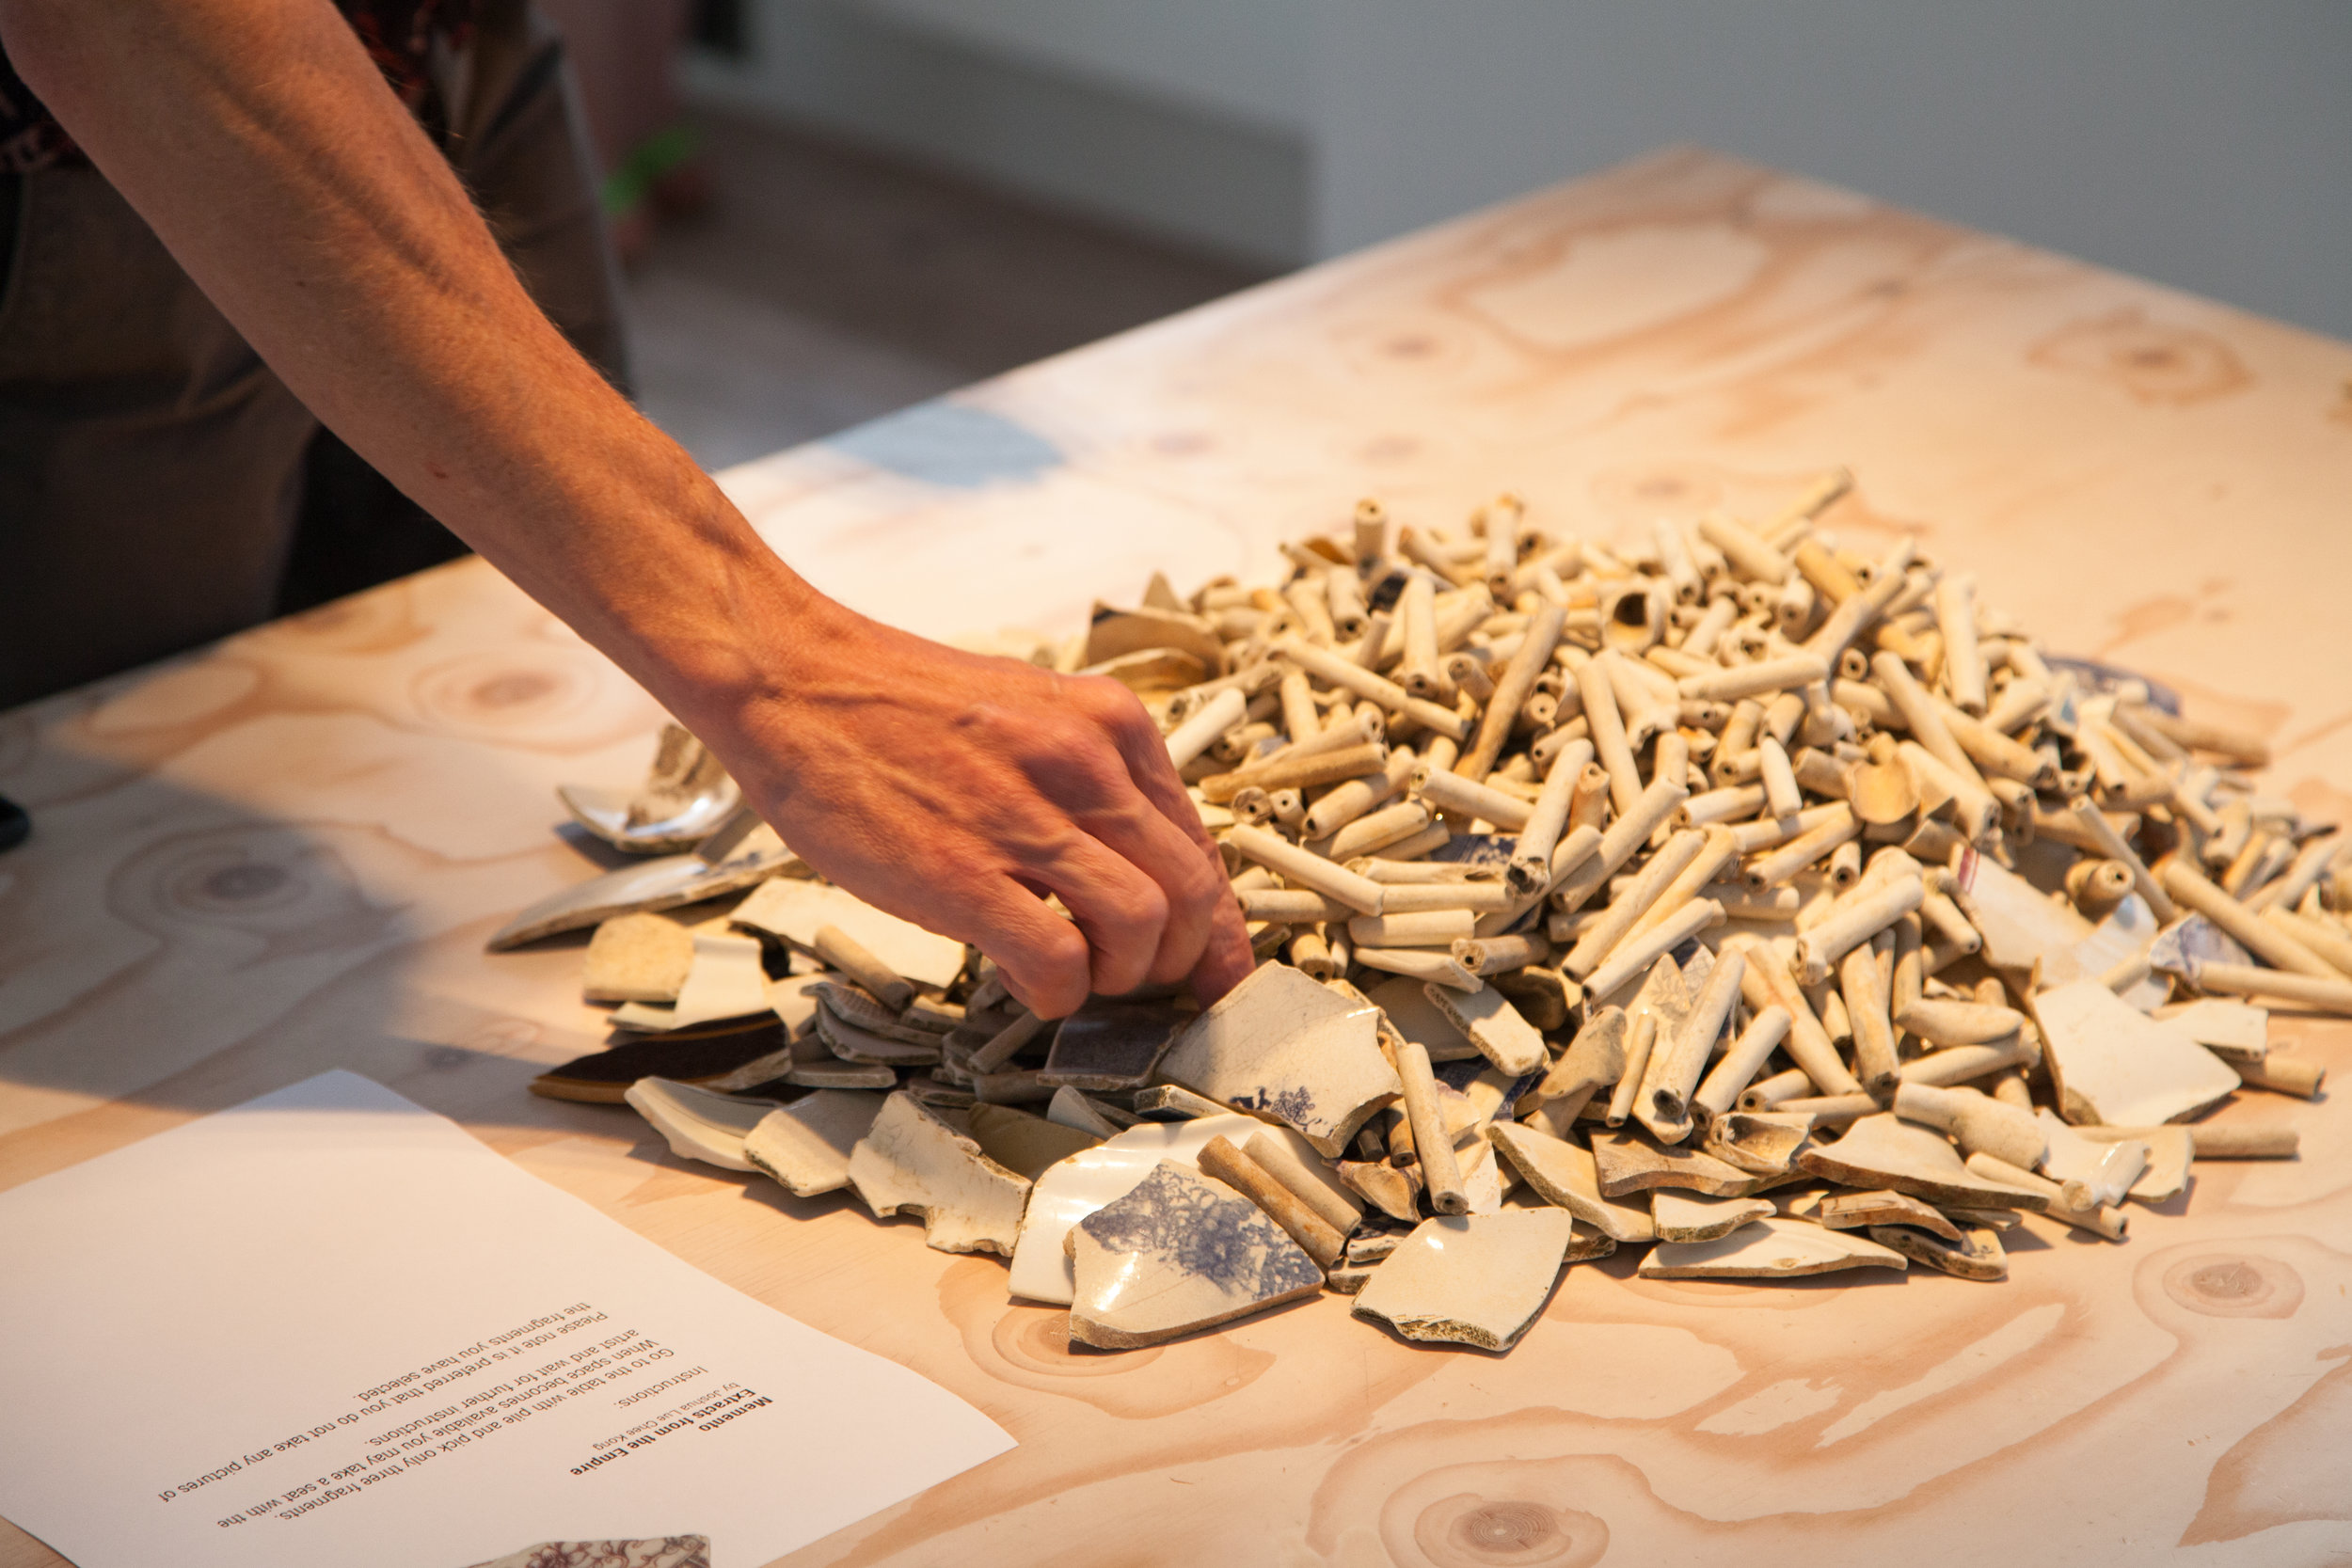 Ceramic shards and pieces of clay pipes, Delfina Foundation, Victoria, London, 2017. Photo: Christian Lübbert